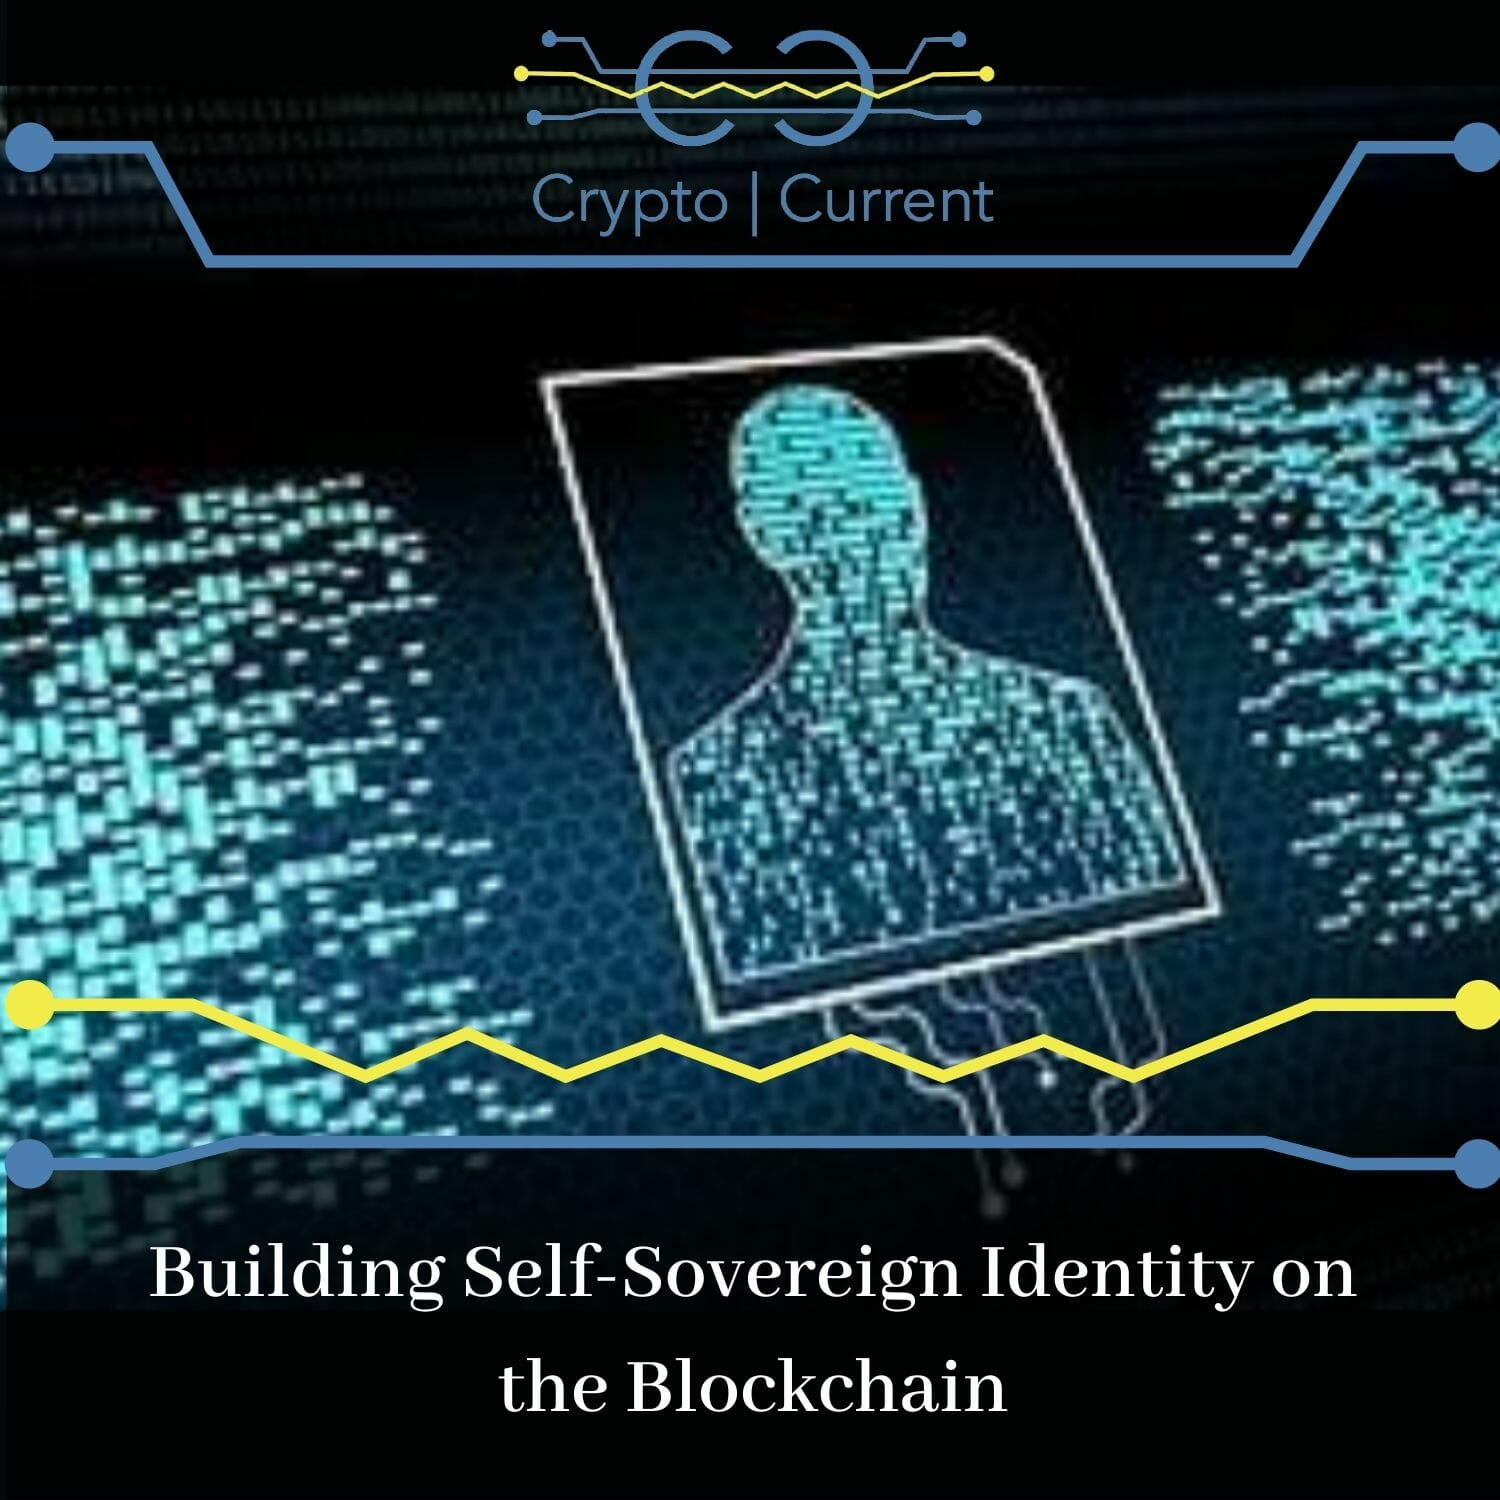 Building Self-Sovereign Identity on the Blockchain